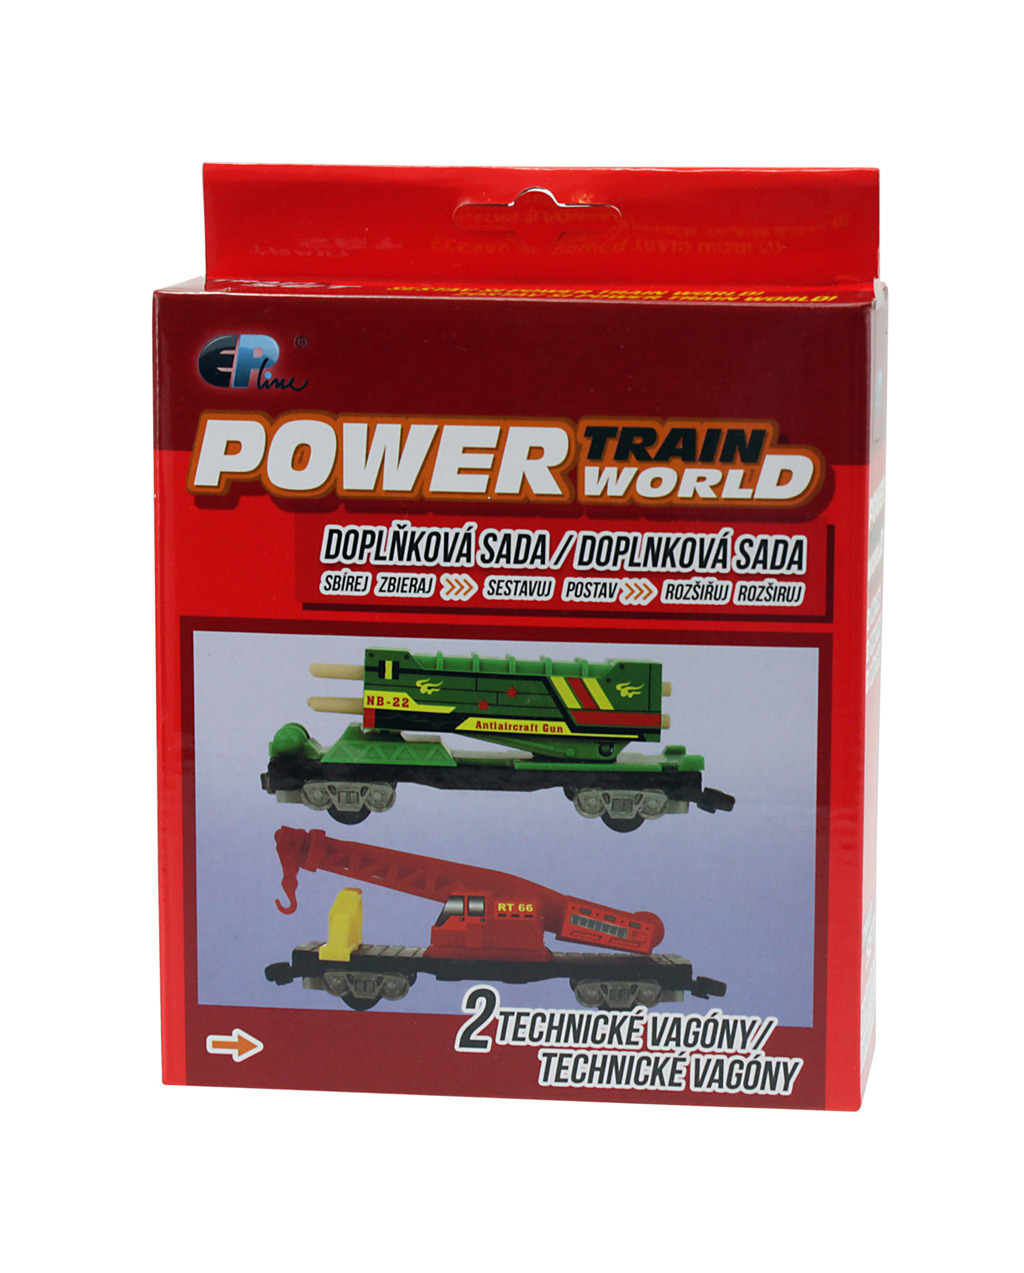 Power train World - Technické vagóny